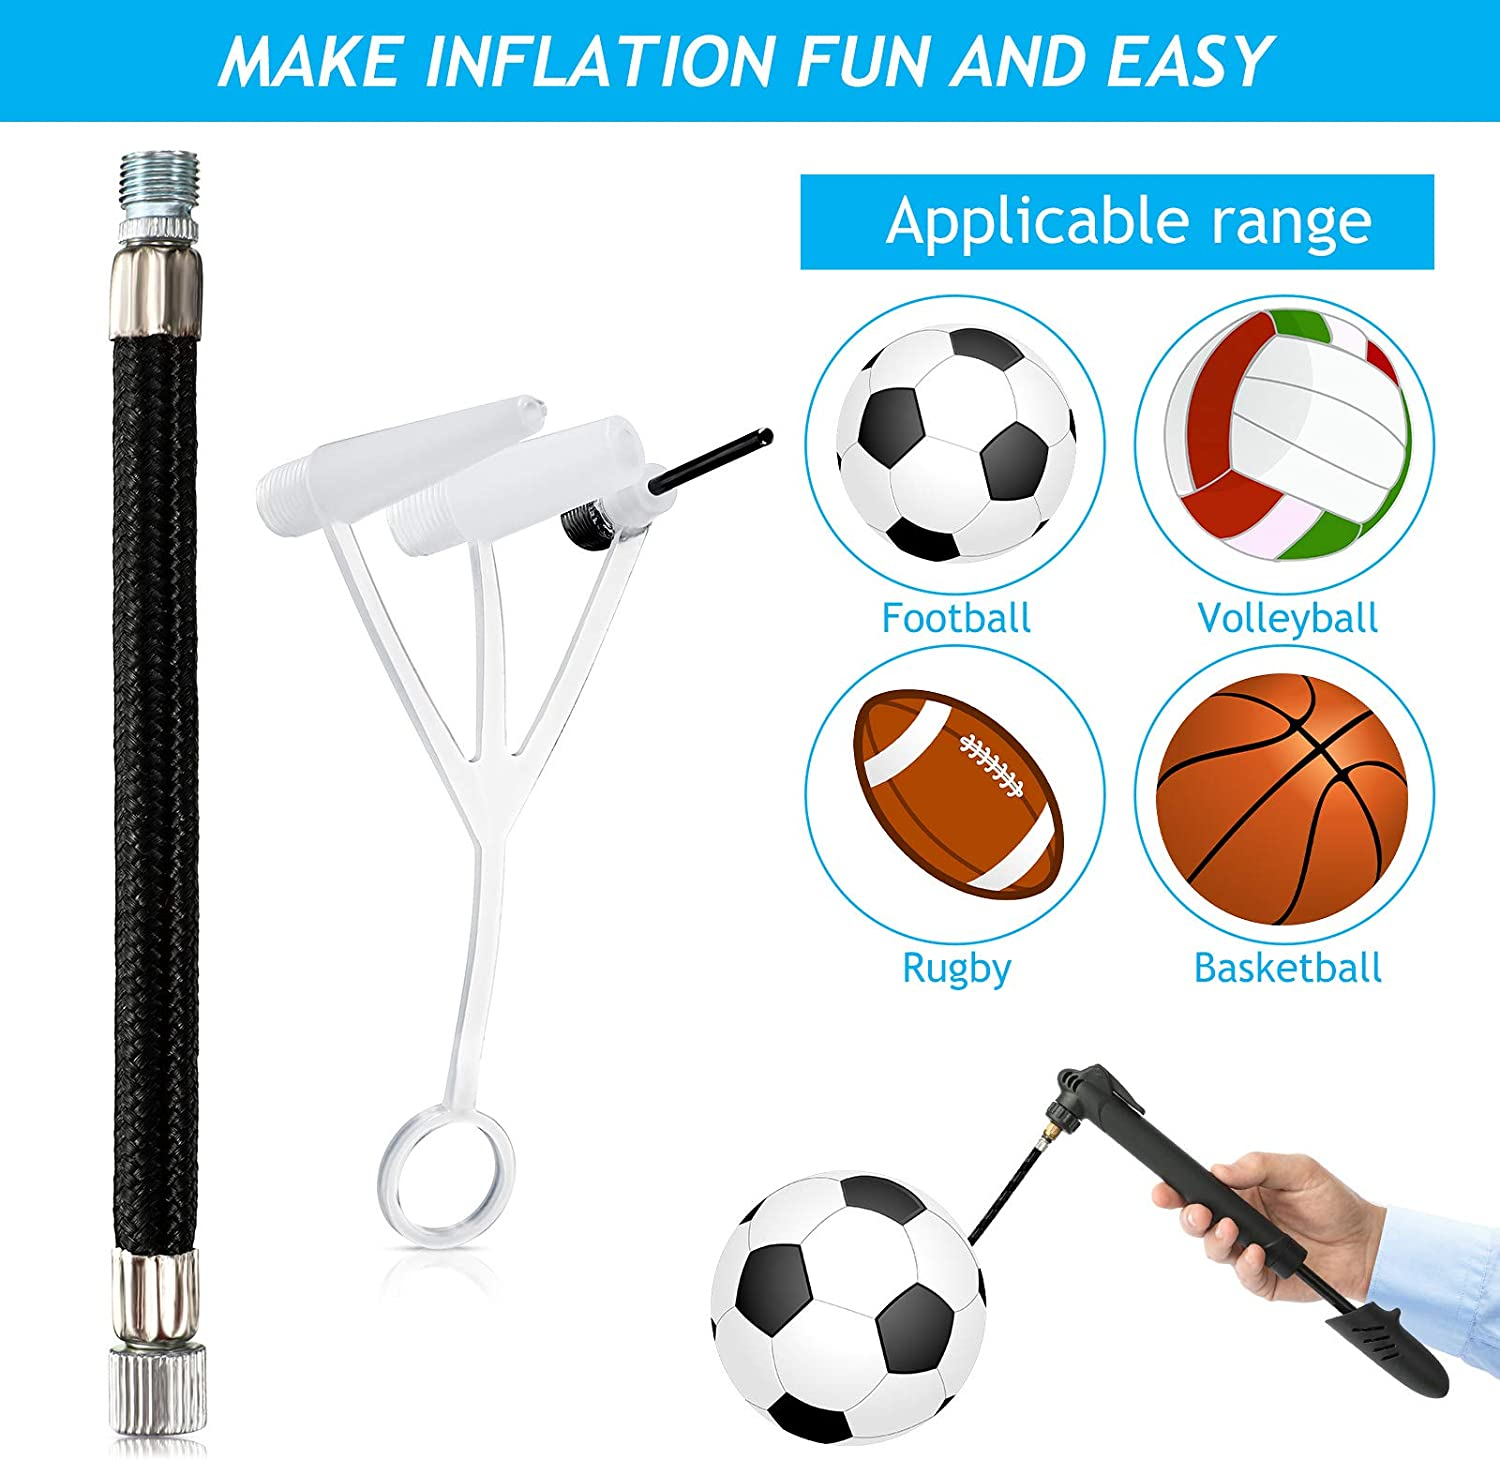 Extension Hose Nozzle Exercise Ball Air Stopper Plug Pin for Yoga Ball Soccer Basketball Football Volleyball Rubber Boat Balloon Swim Inflatables 16 Exercise Ball Plug Replacement Kit with Needle